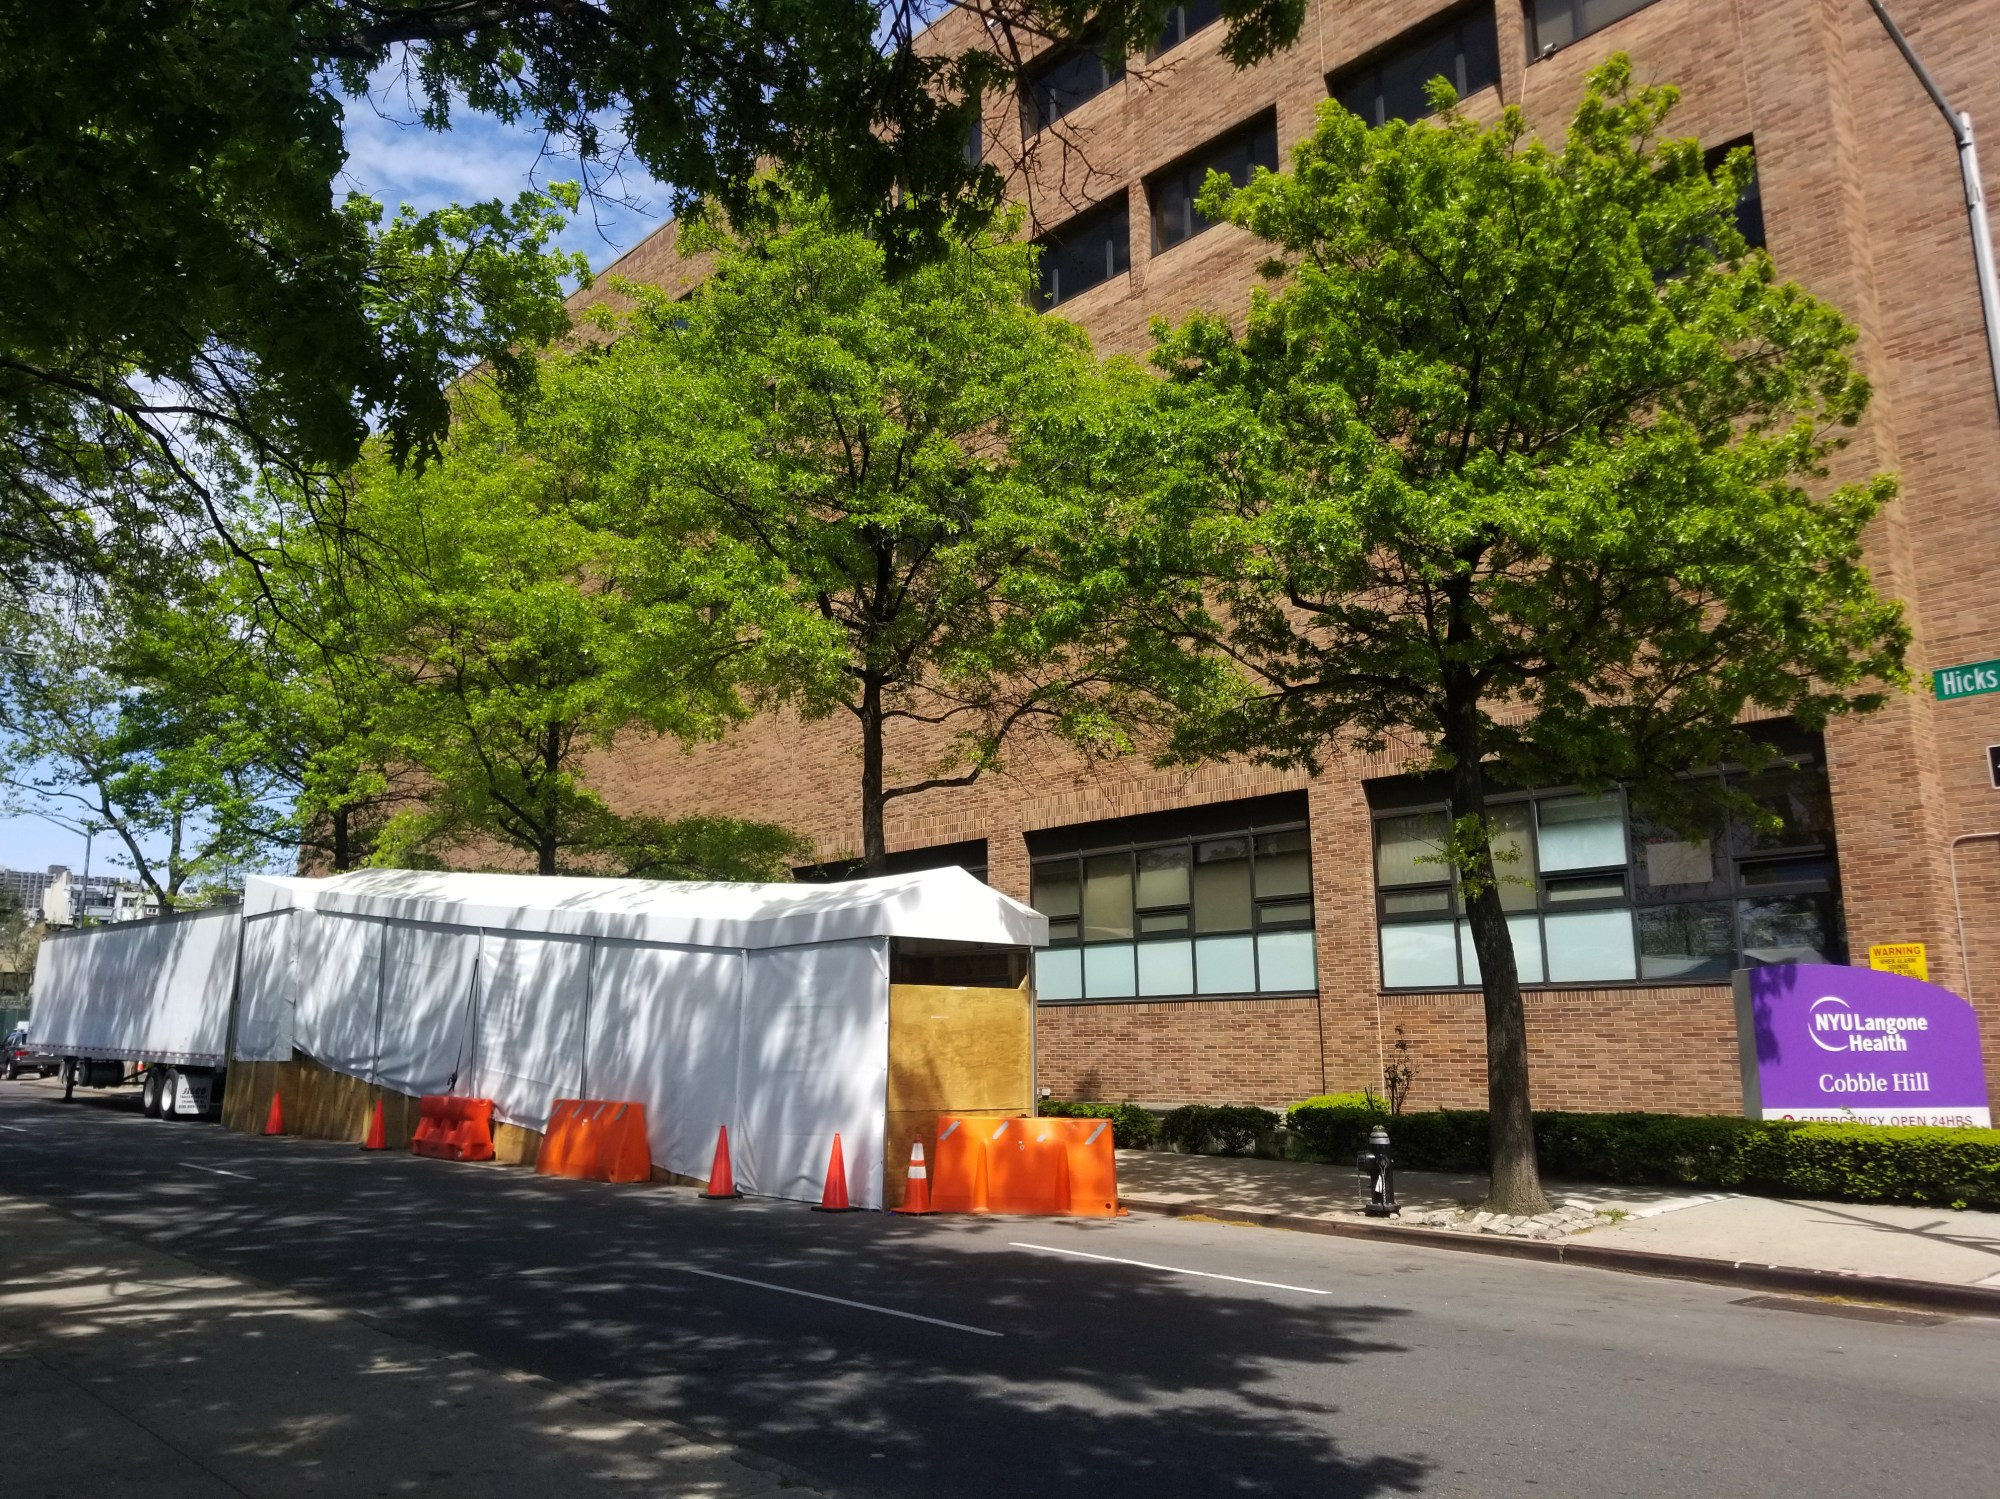 A refrigerated truck serving as makeshift morgue is seen outside of NYU Langone Health Cobble Hill emergency department during the coronavirus pandemic on May 17, 2020 in the Cobble Hill neighborhood of the Brooklyn borough of New York City. (Justin Heiman/Getty Images)